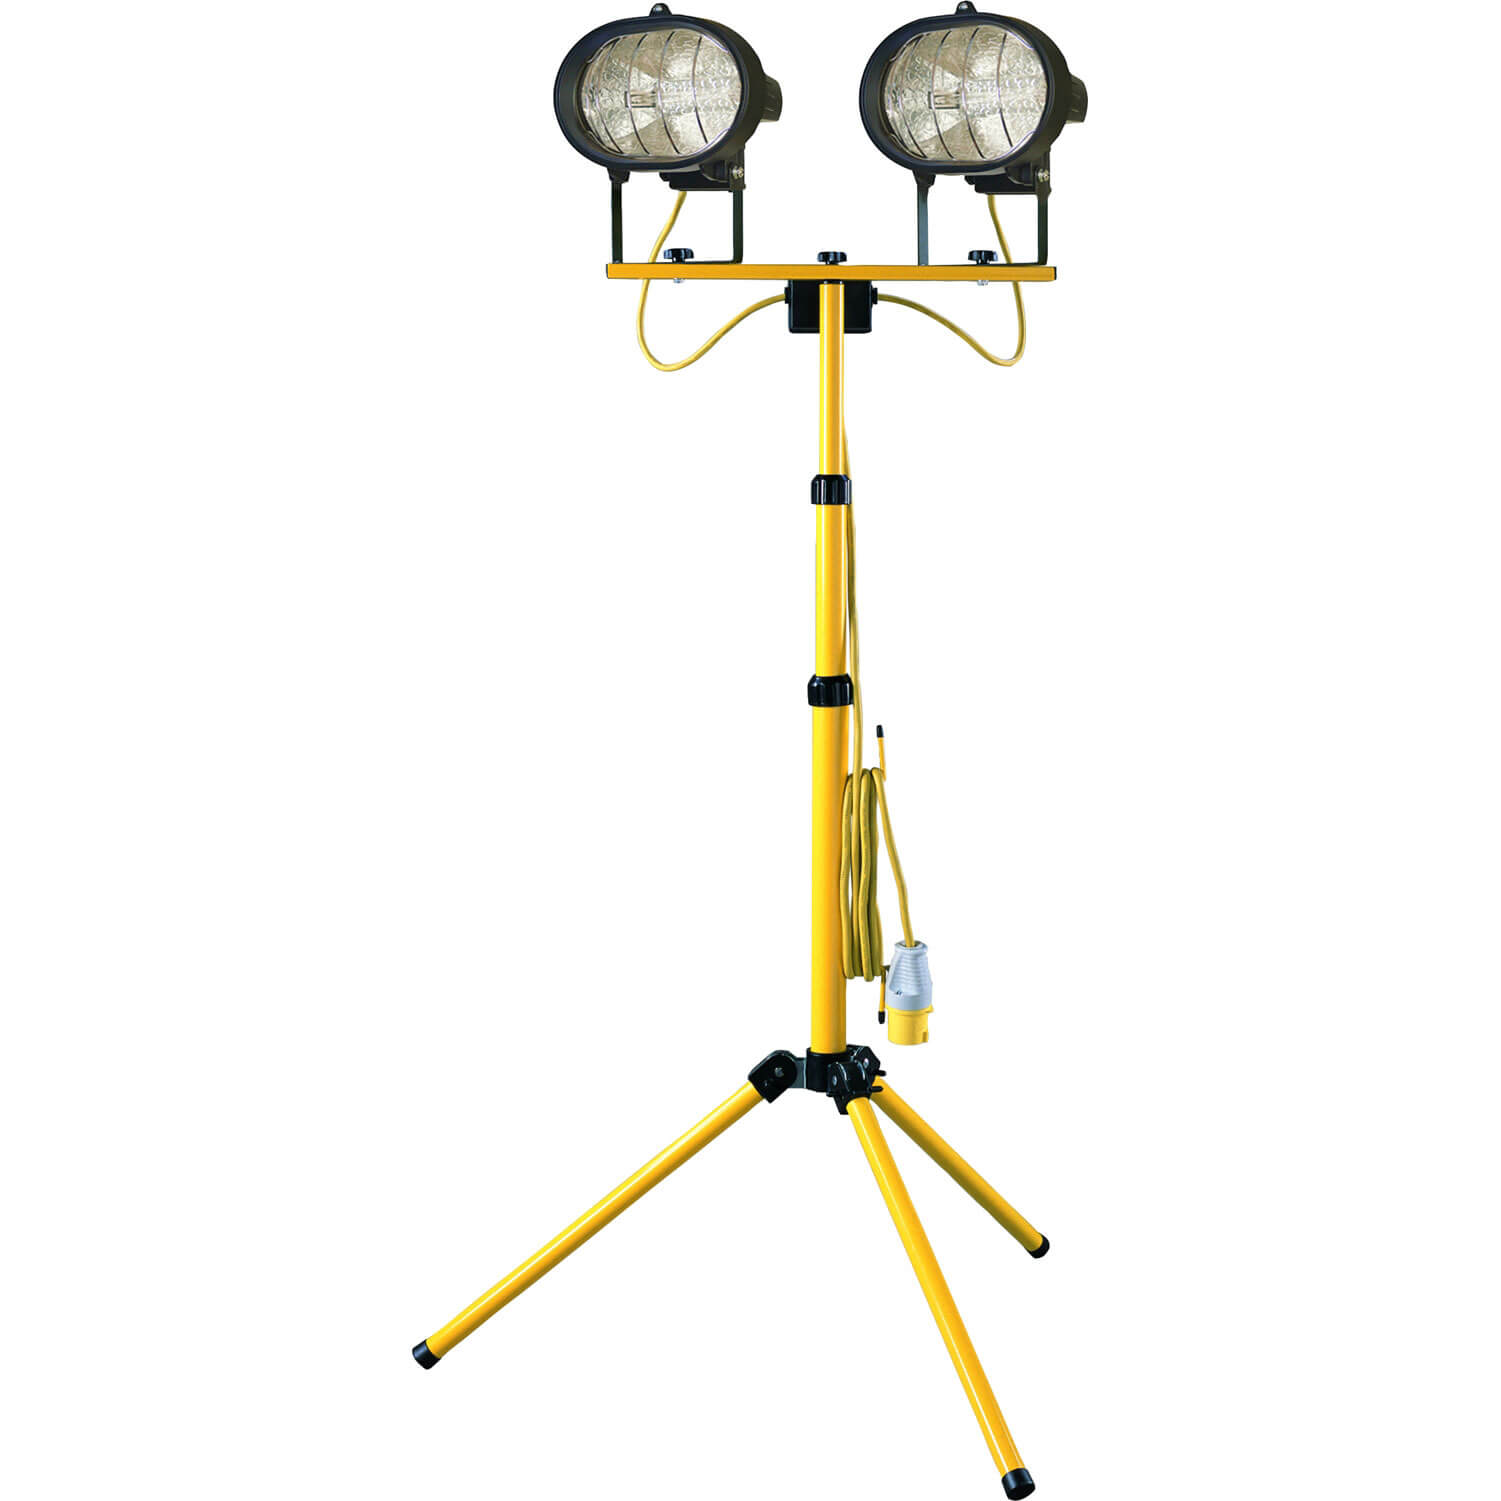 Image of Faithfull 1000W Halogen Twin Site Light 110v